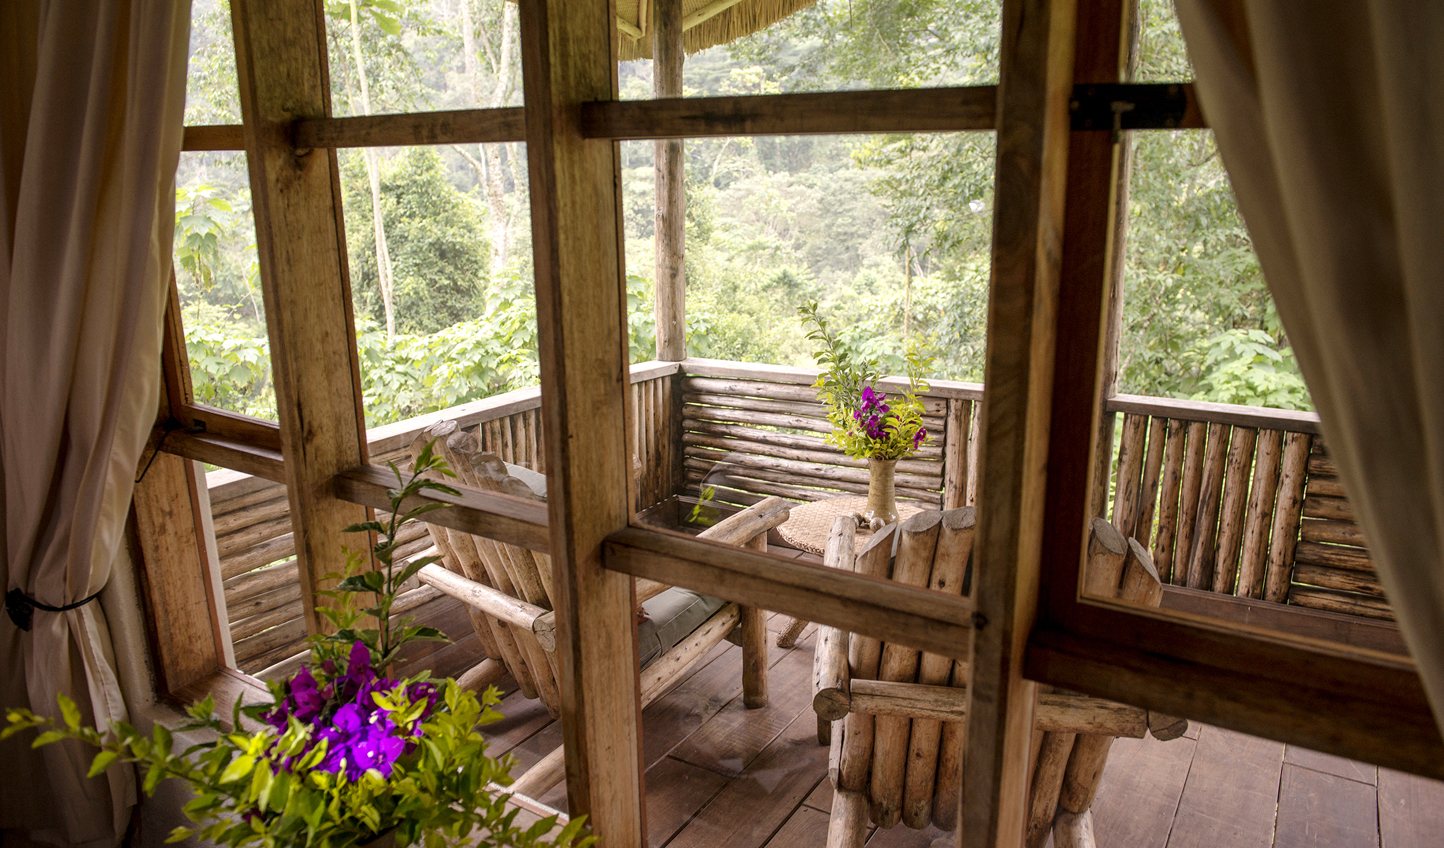 Head out onto your private balcony and watch chimpanzees swing by